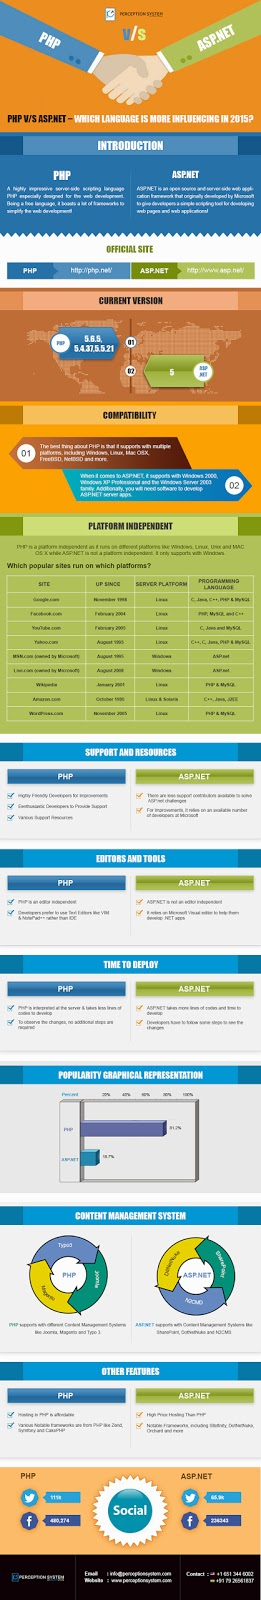 PHP v/s asp.net Infographic 2015